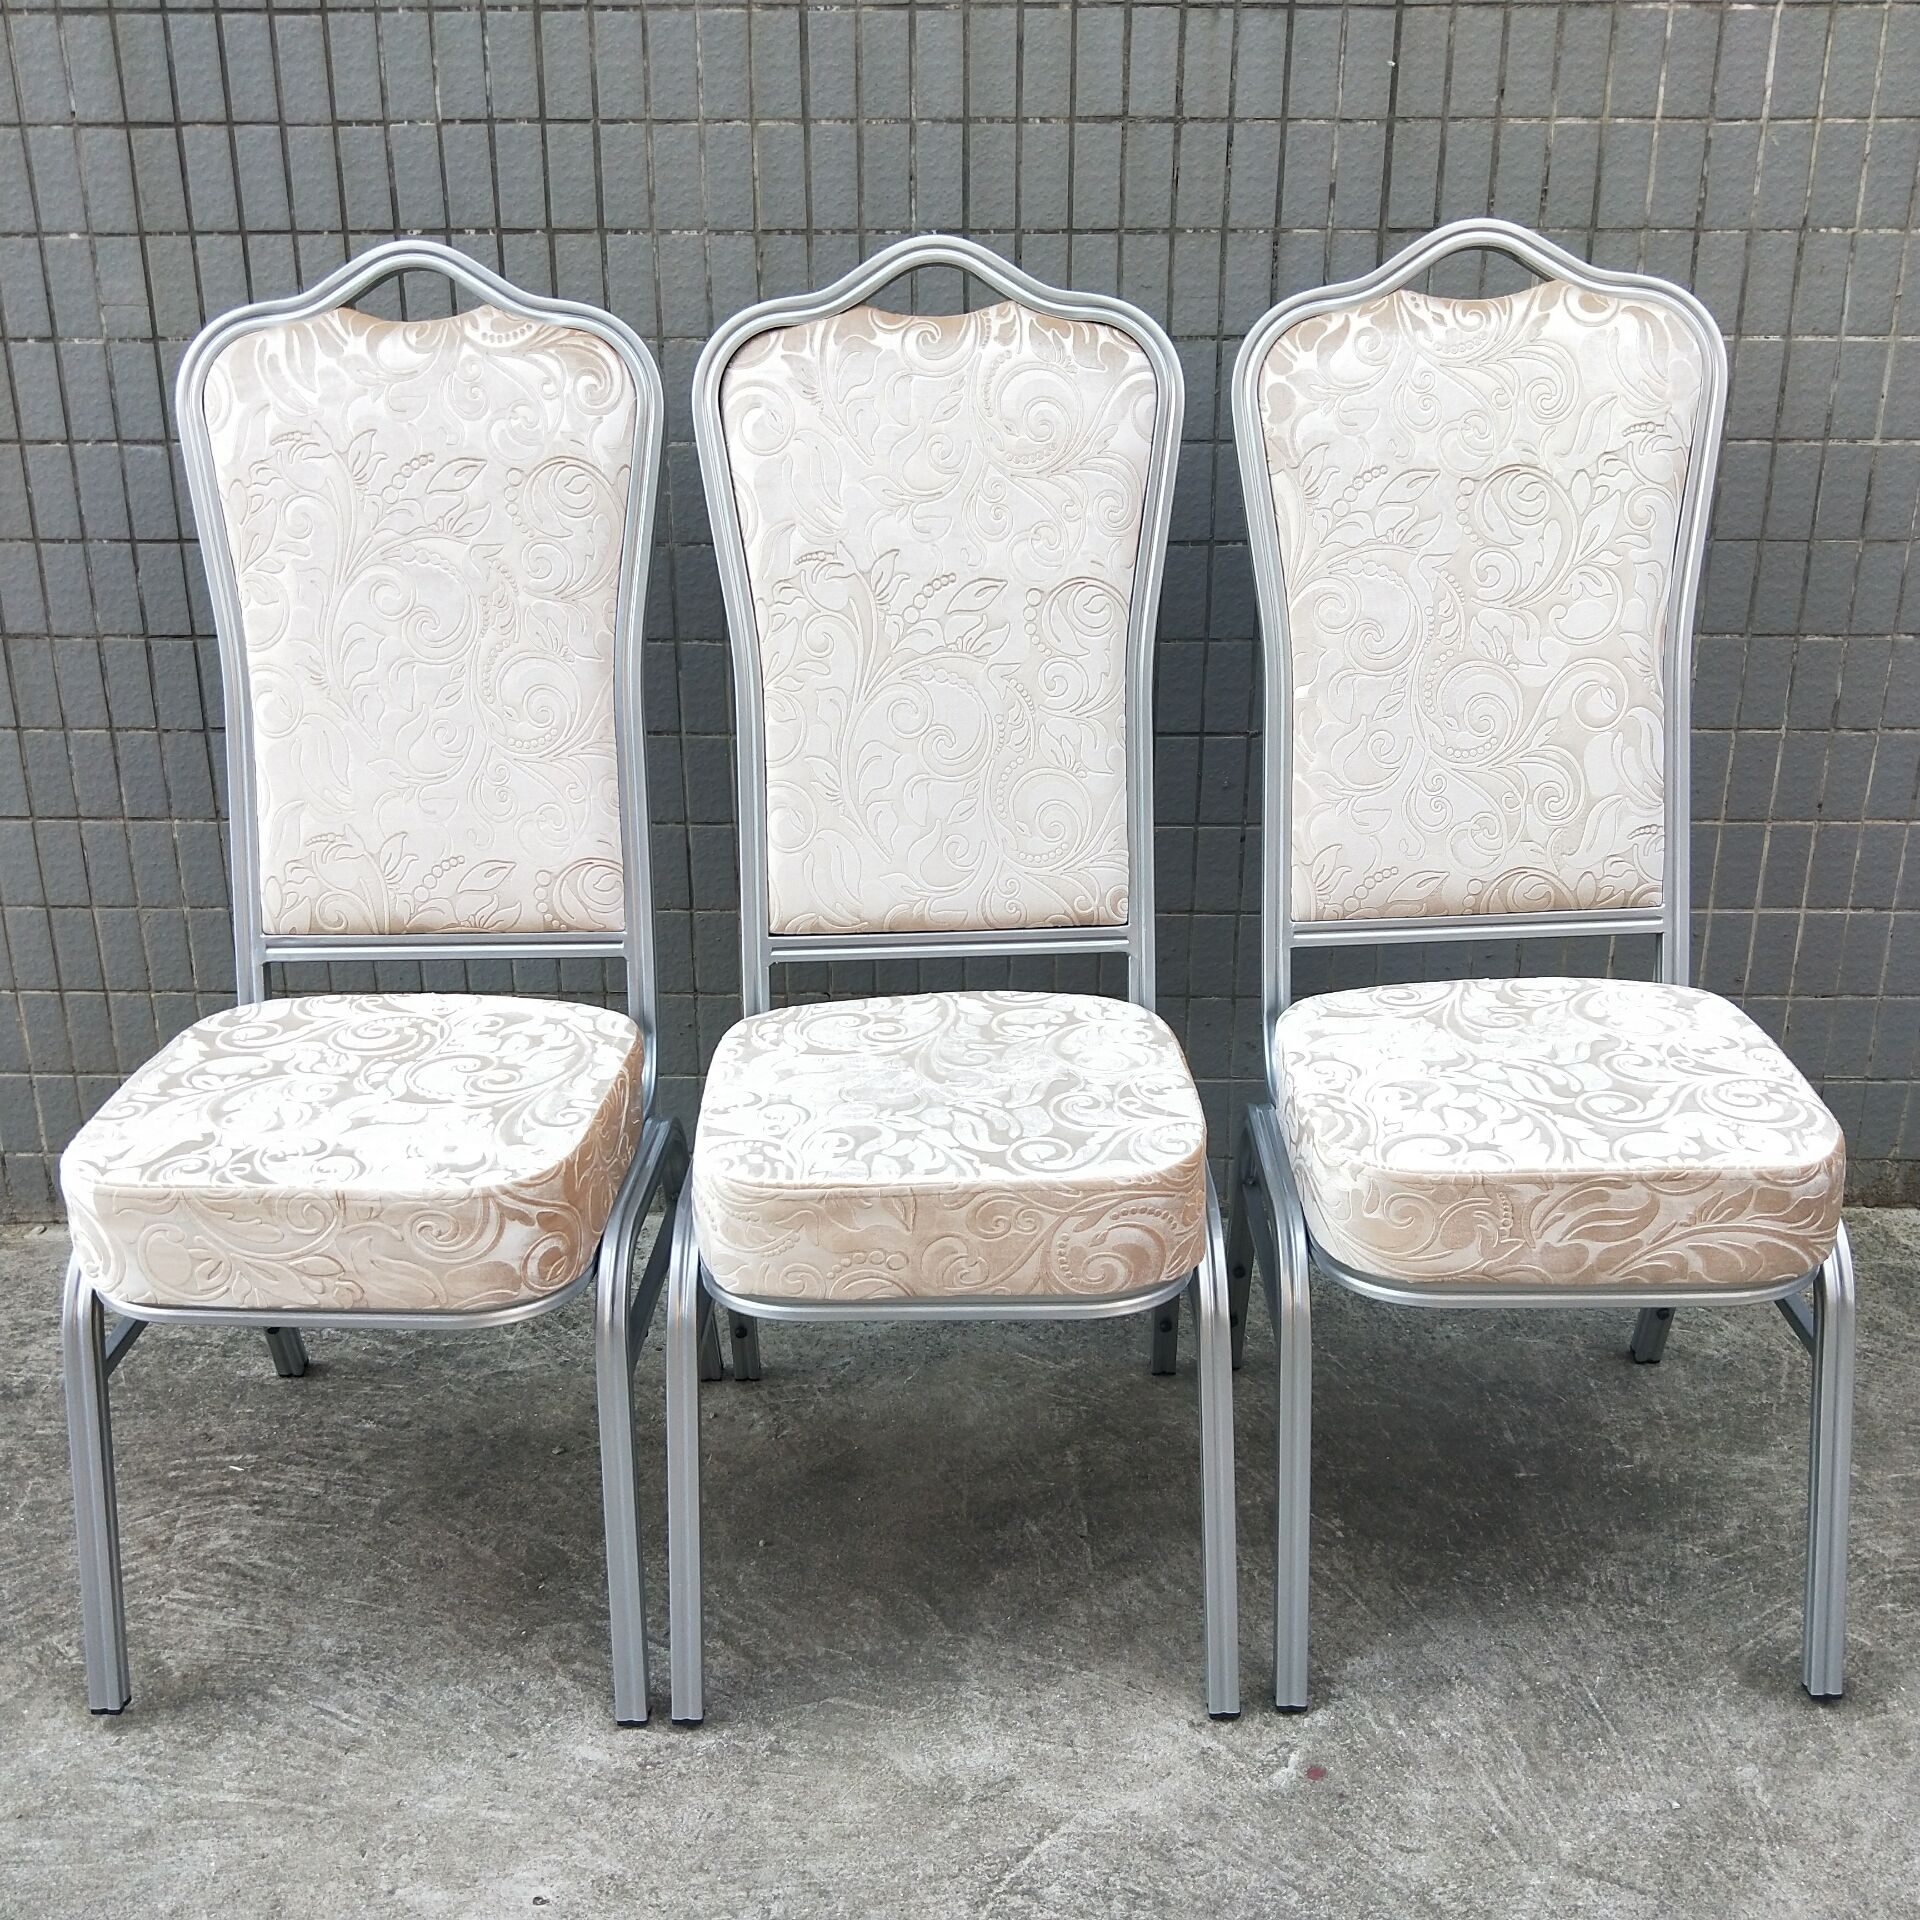 Newly Arrival Chair For Auditorium -